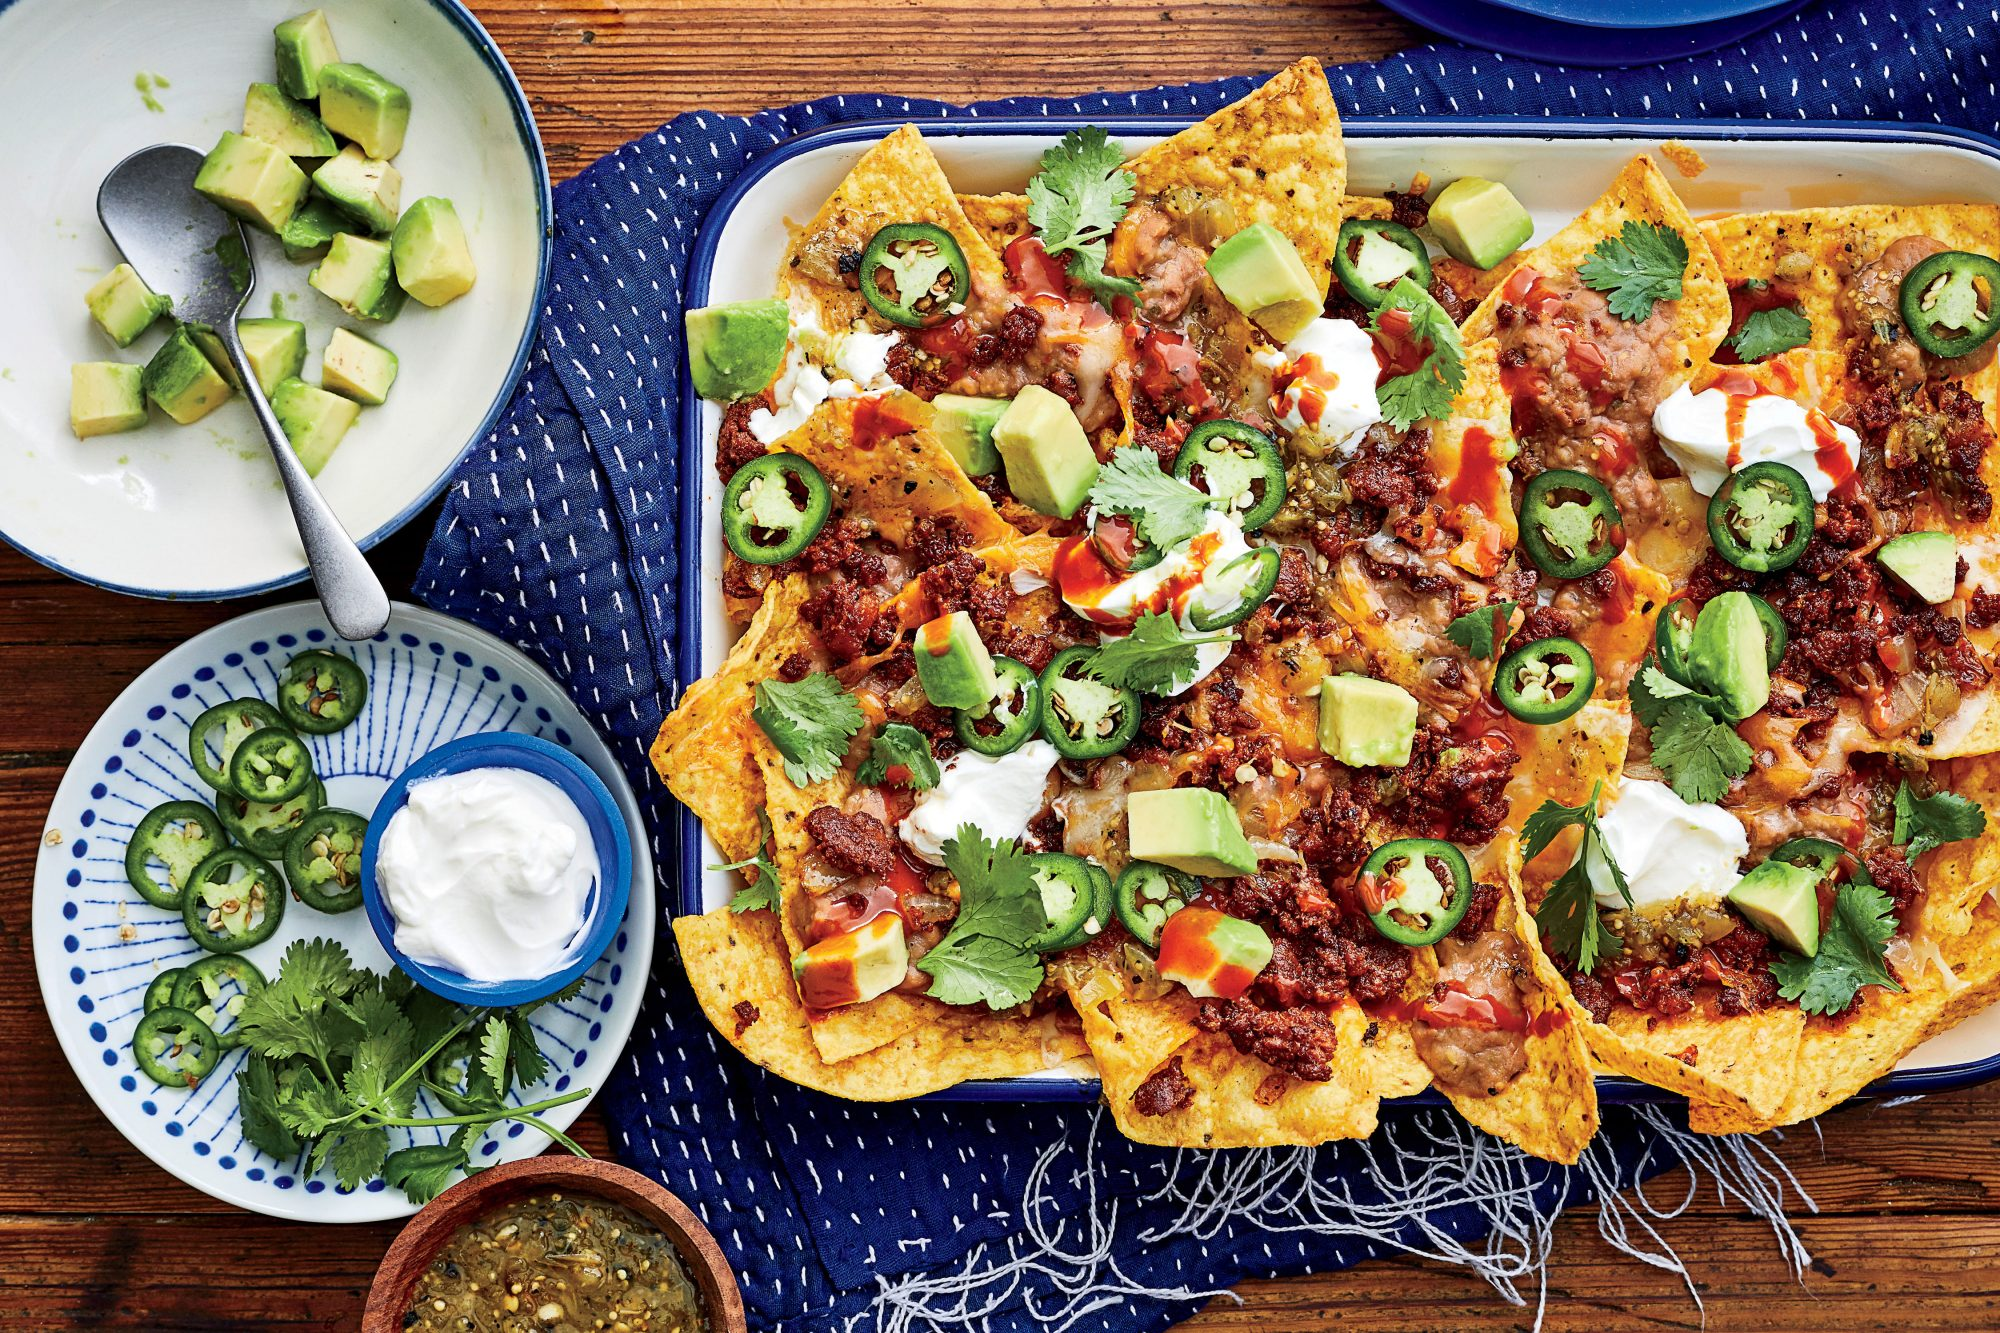 Sheet Pan Nachos with Chorizo and Refried Beans